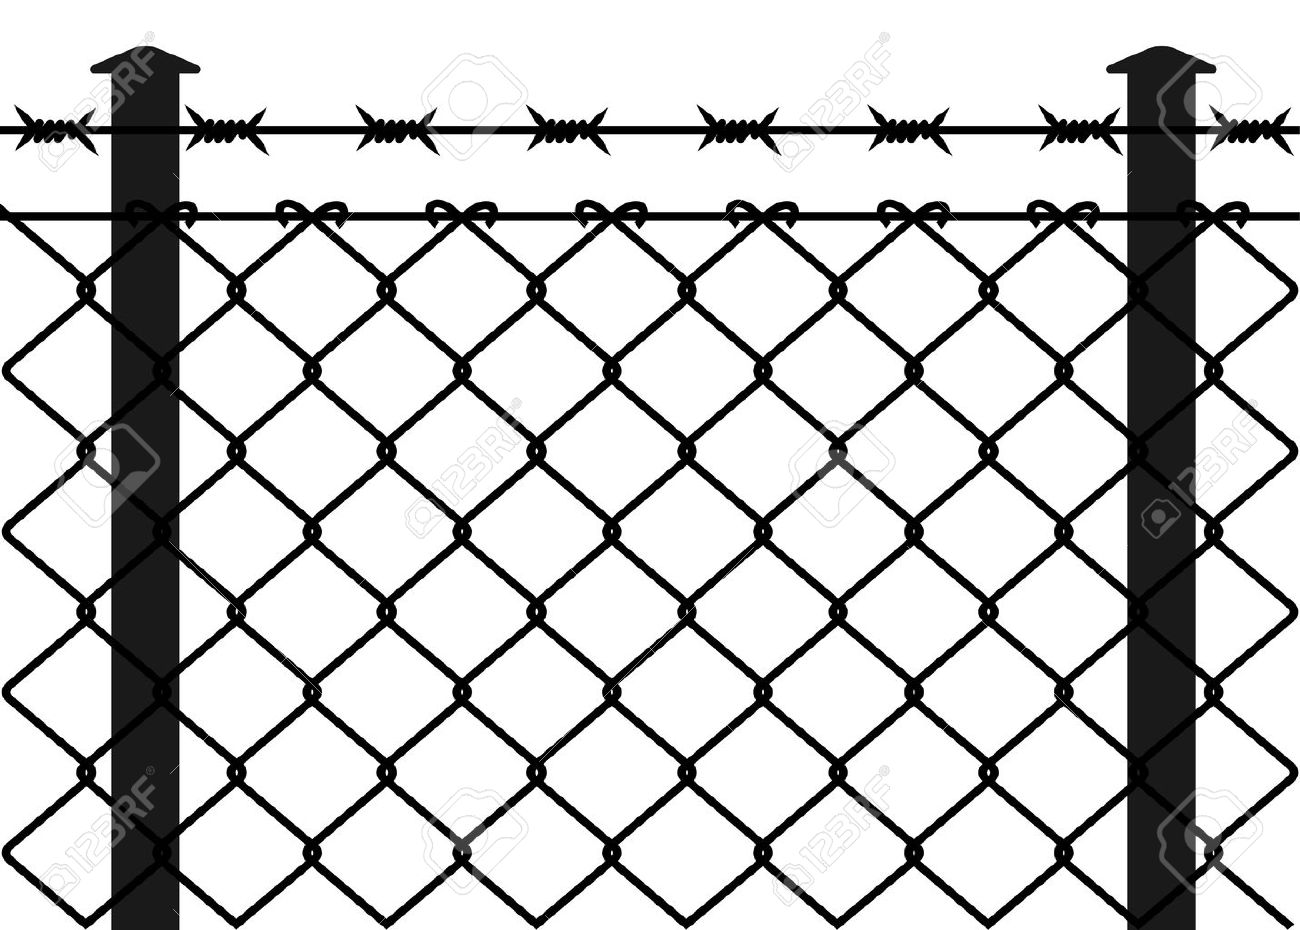 Wire fence with barbed wires. Vector illustration.